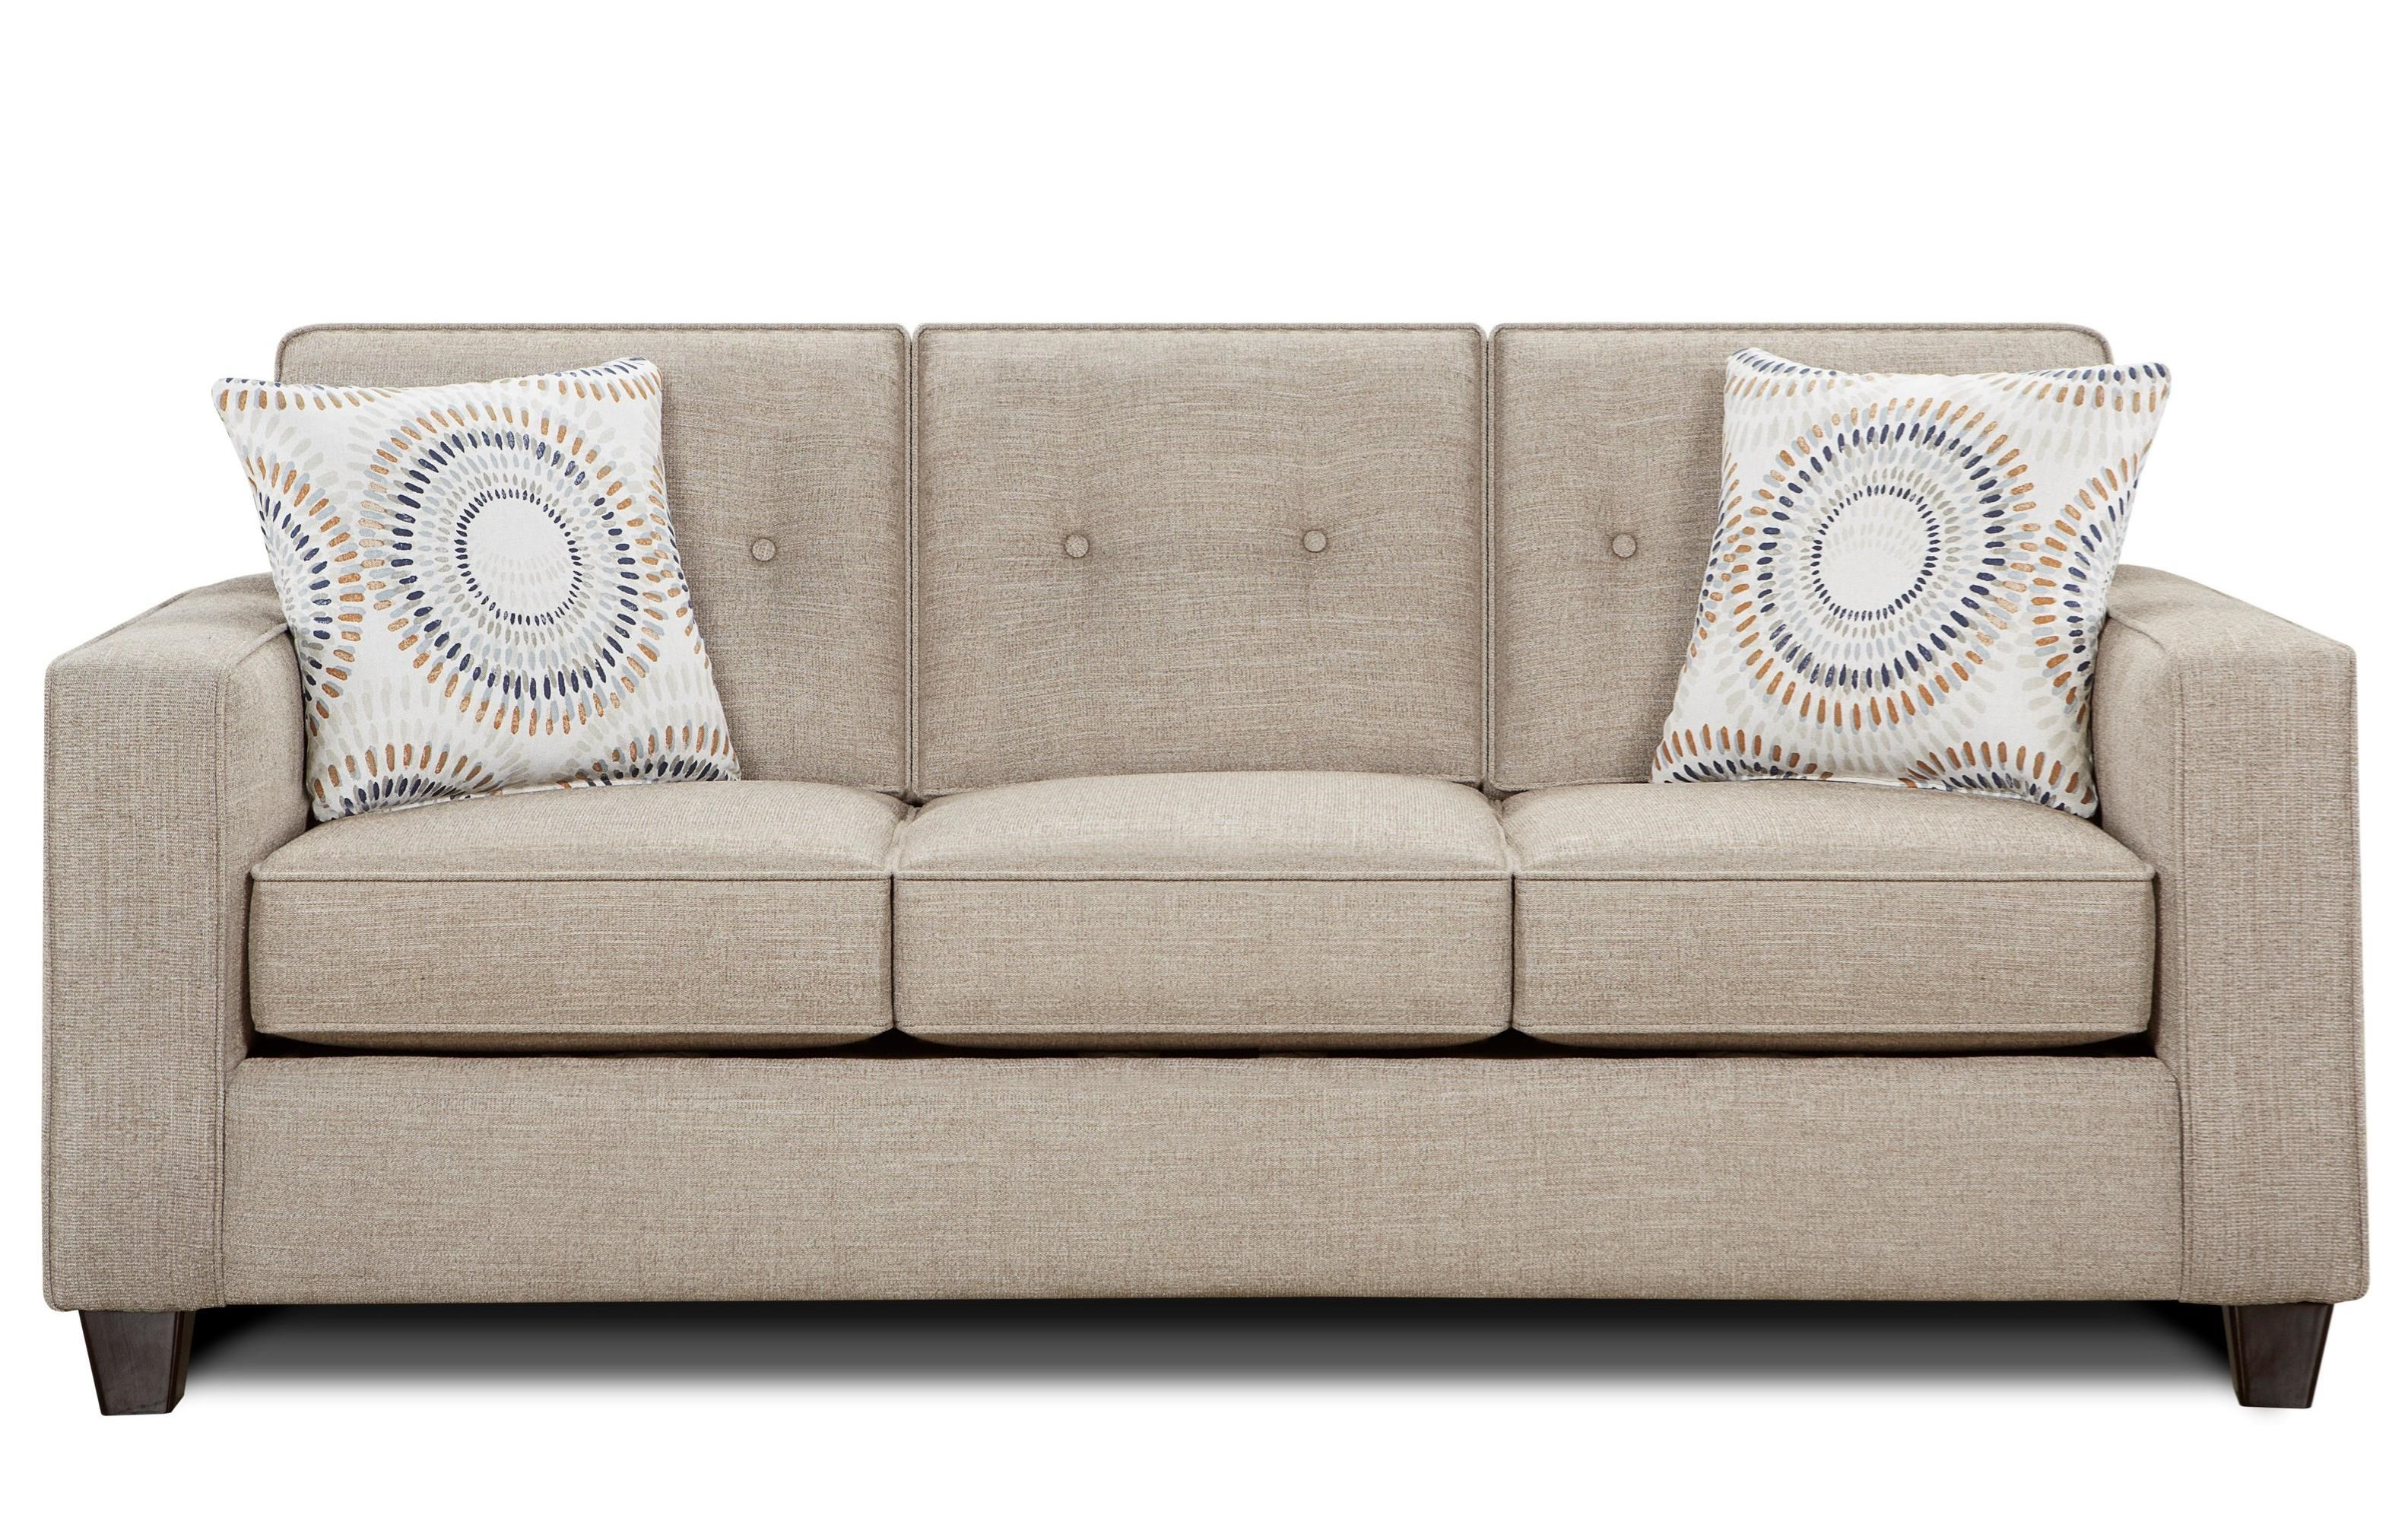 Fusion Furniture 3560b Contemporary Sofa With Track Arms And Button